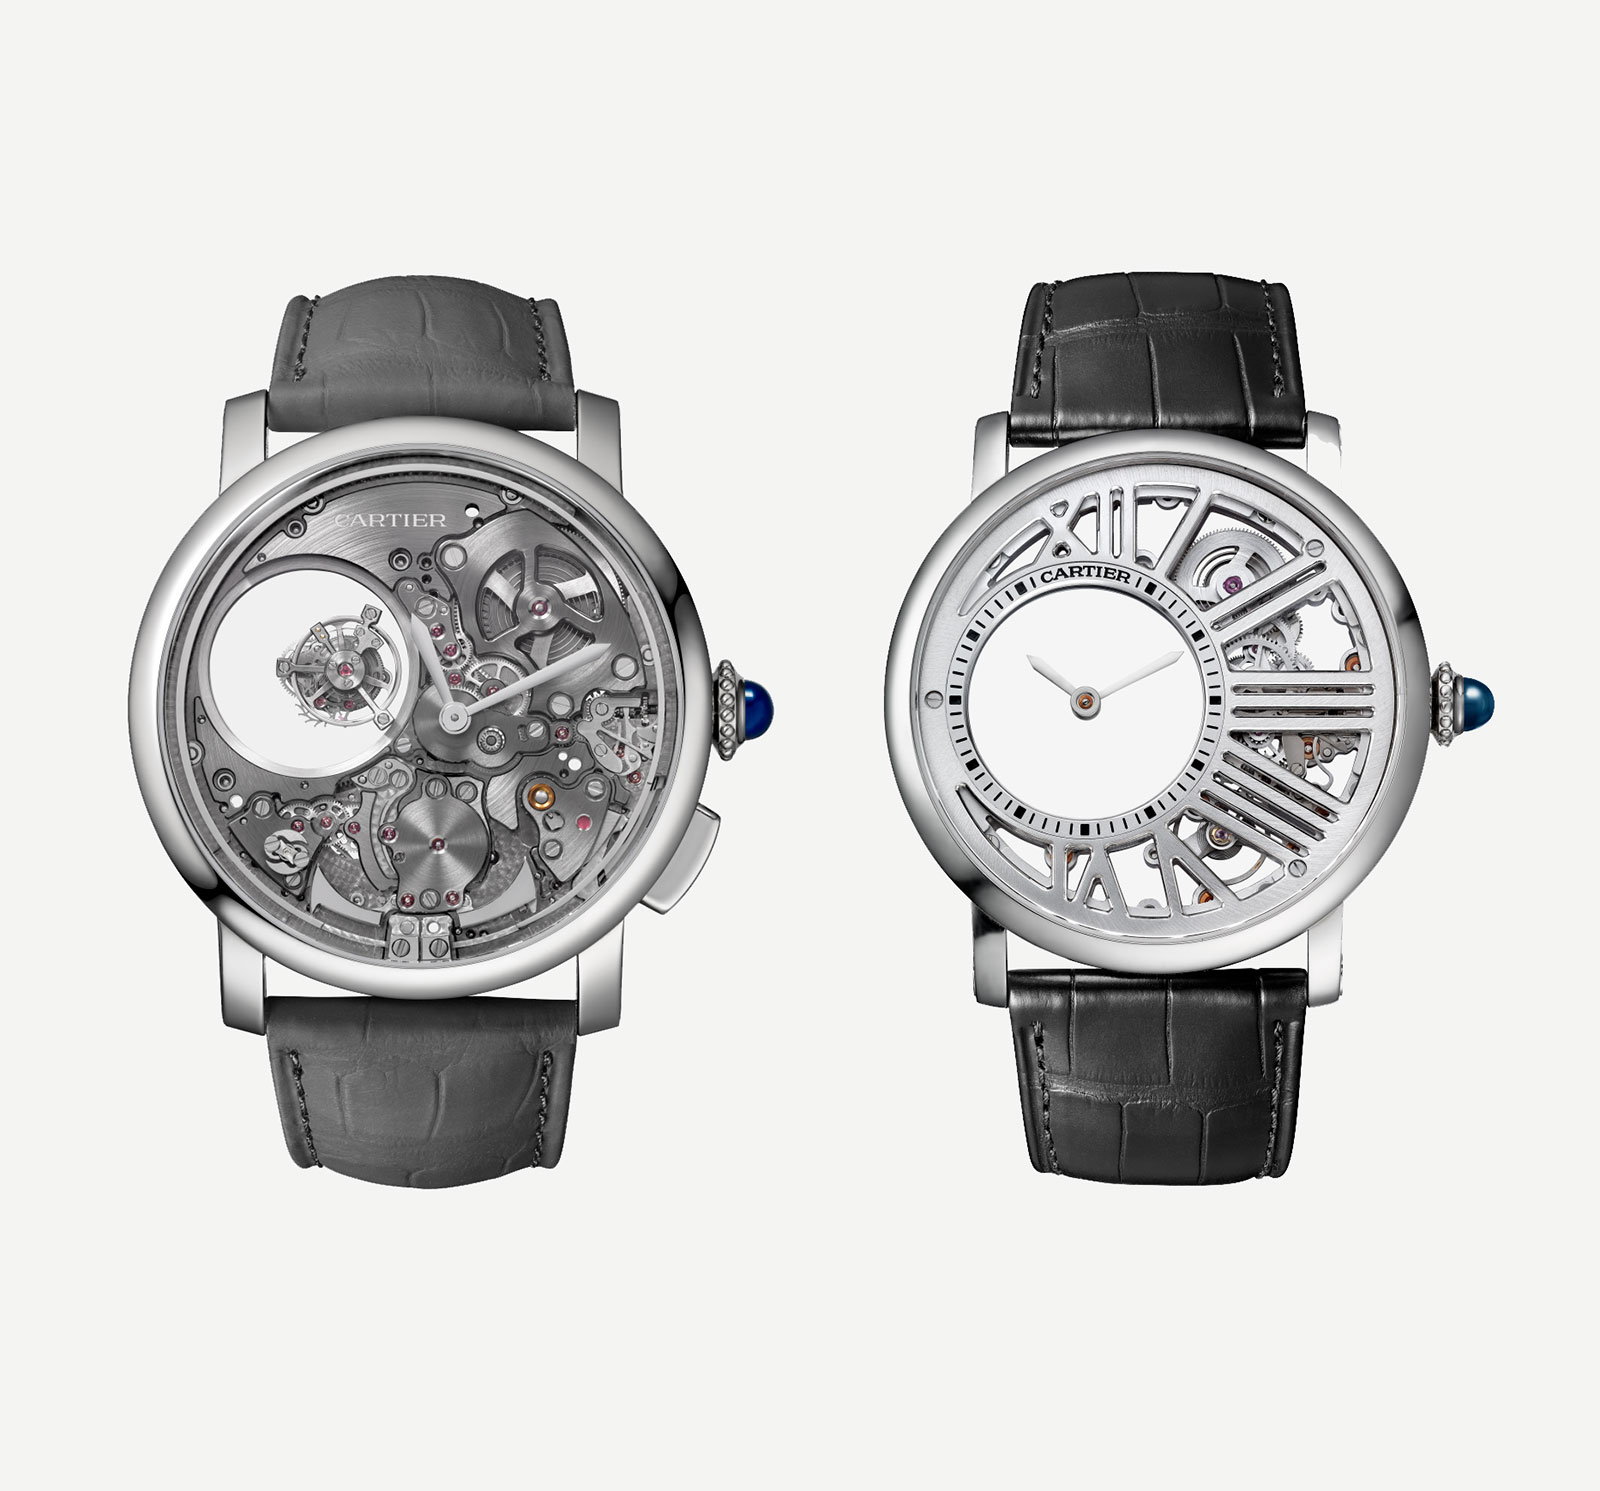 Replica Cartier Rotonde de Cartier Minute Repeater Mysterious Watch